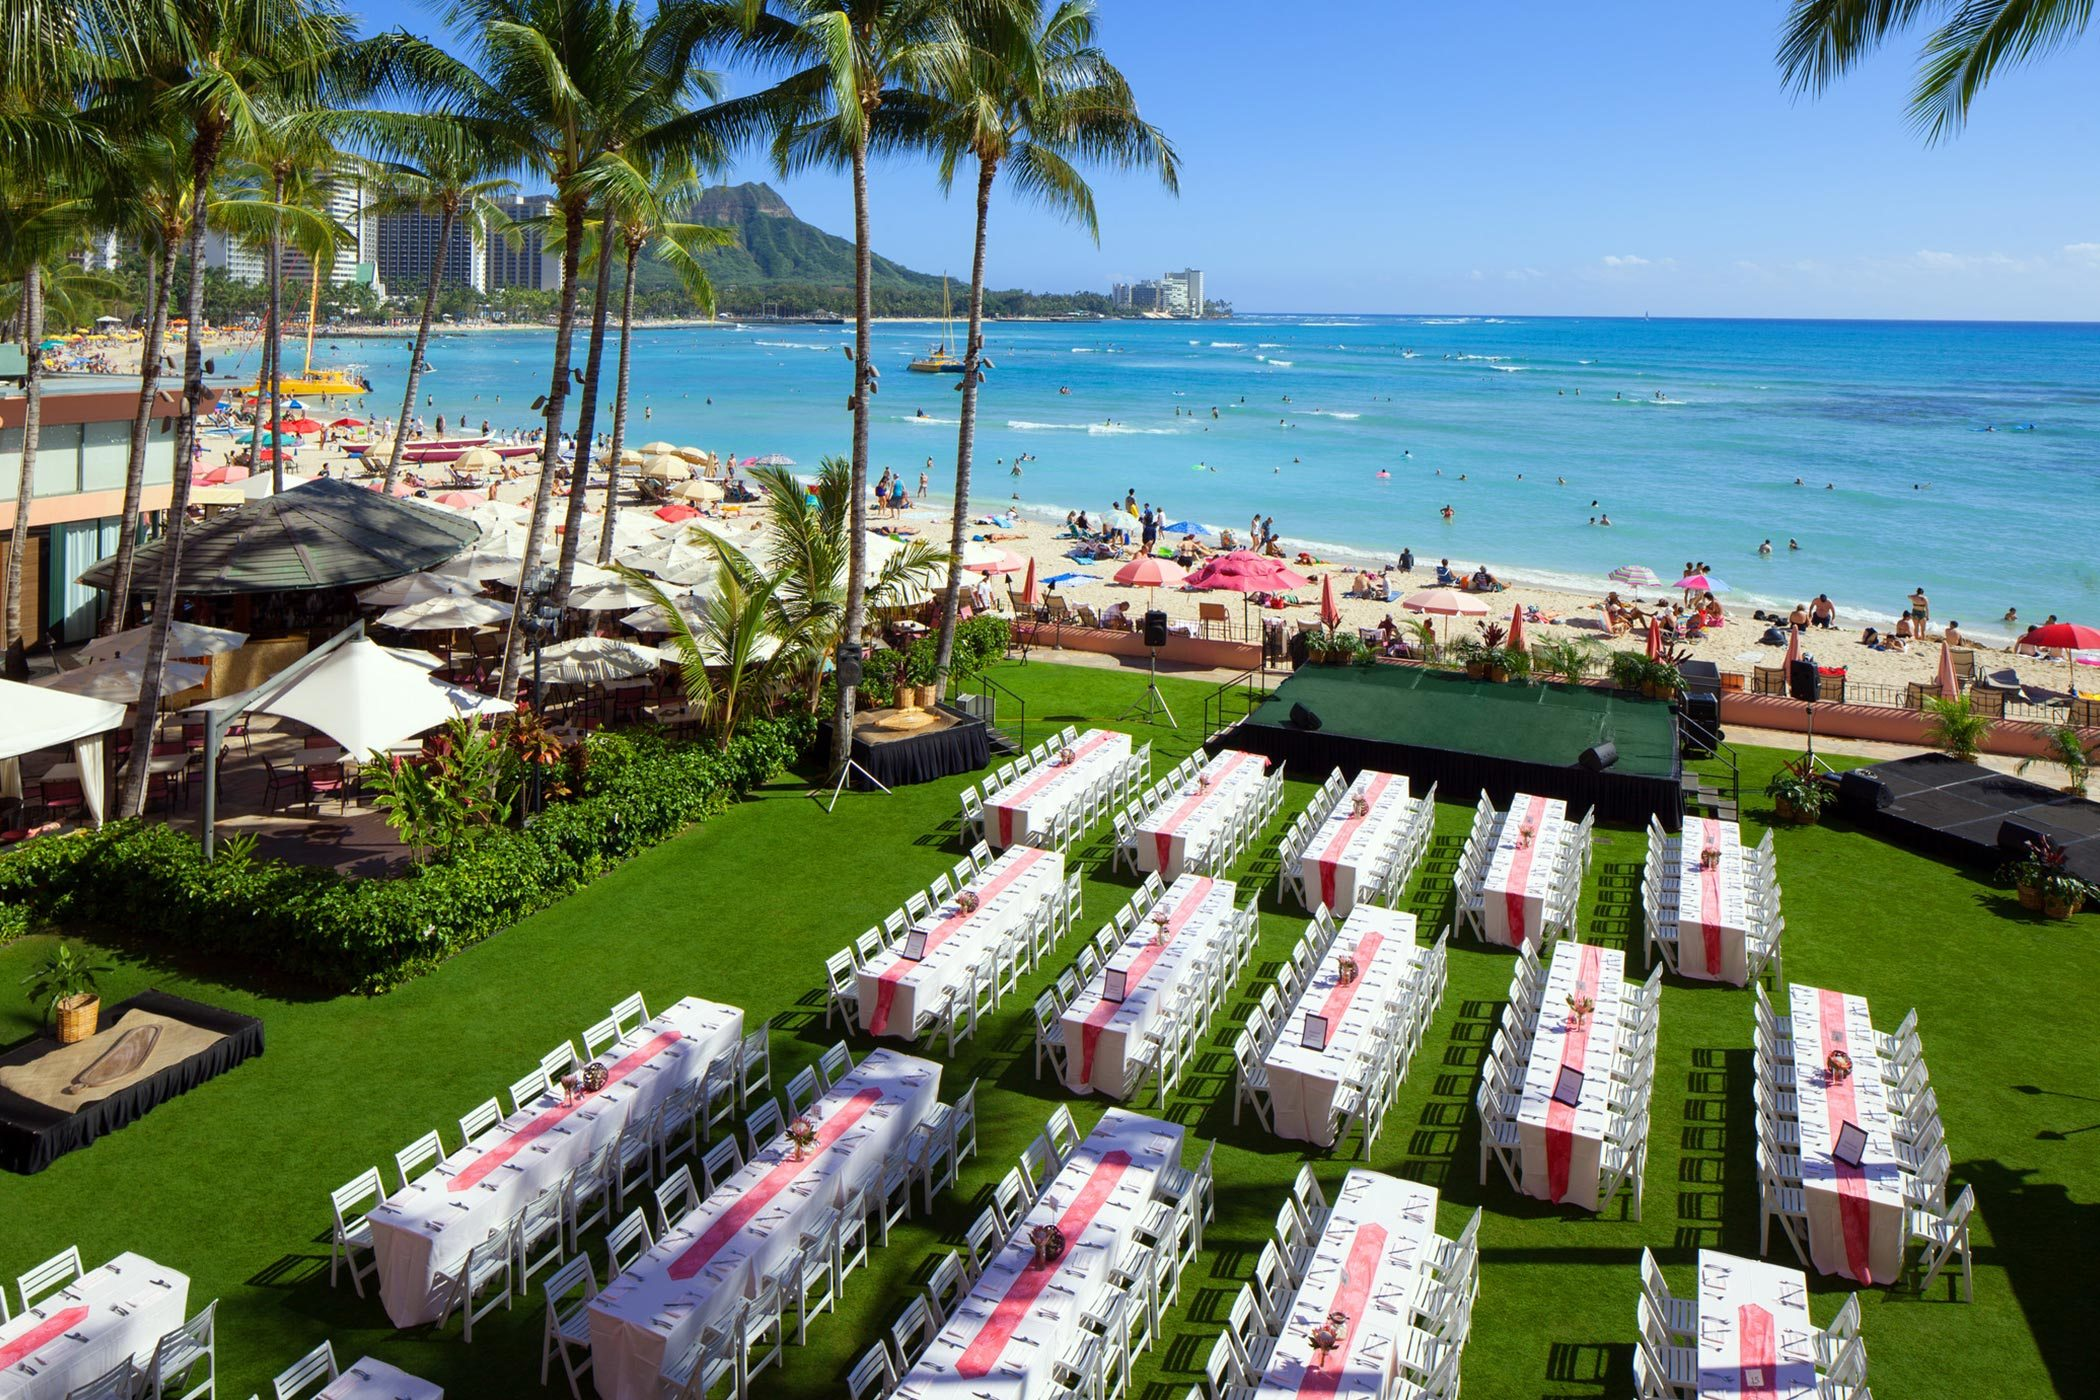 rows of tables and chairs at the resort by the beach